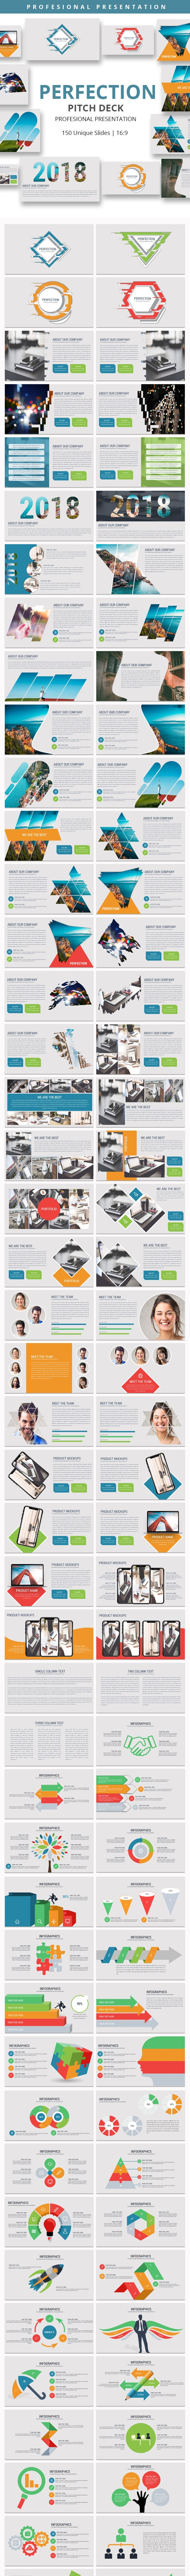 Perfection Pitch Deck Powerpoint Presentation - Business PowerPoint Templates